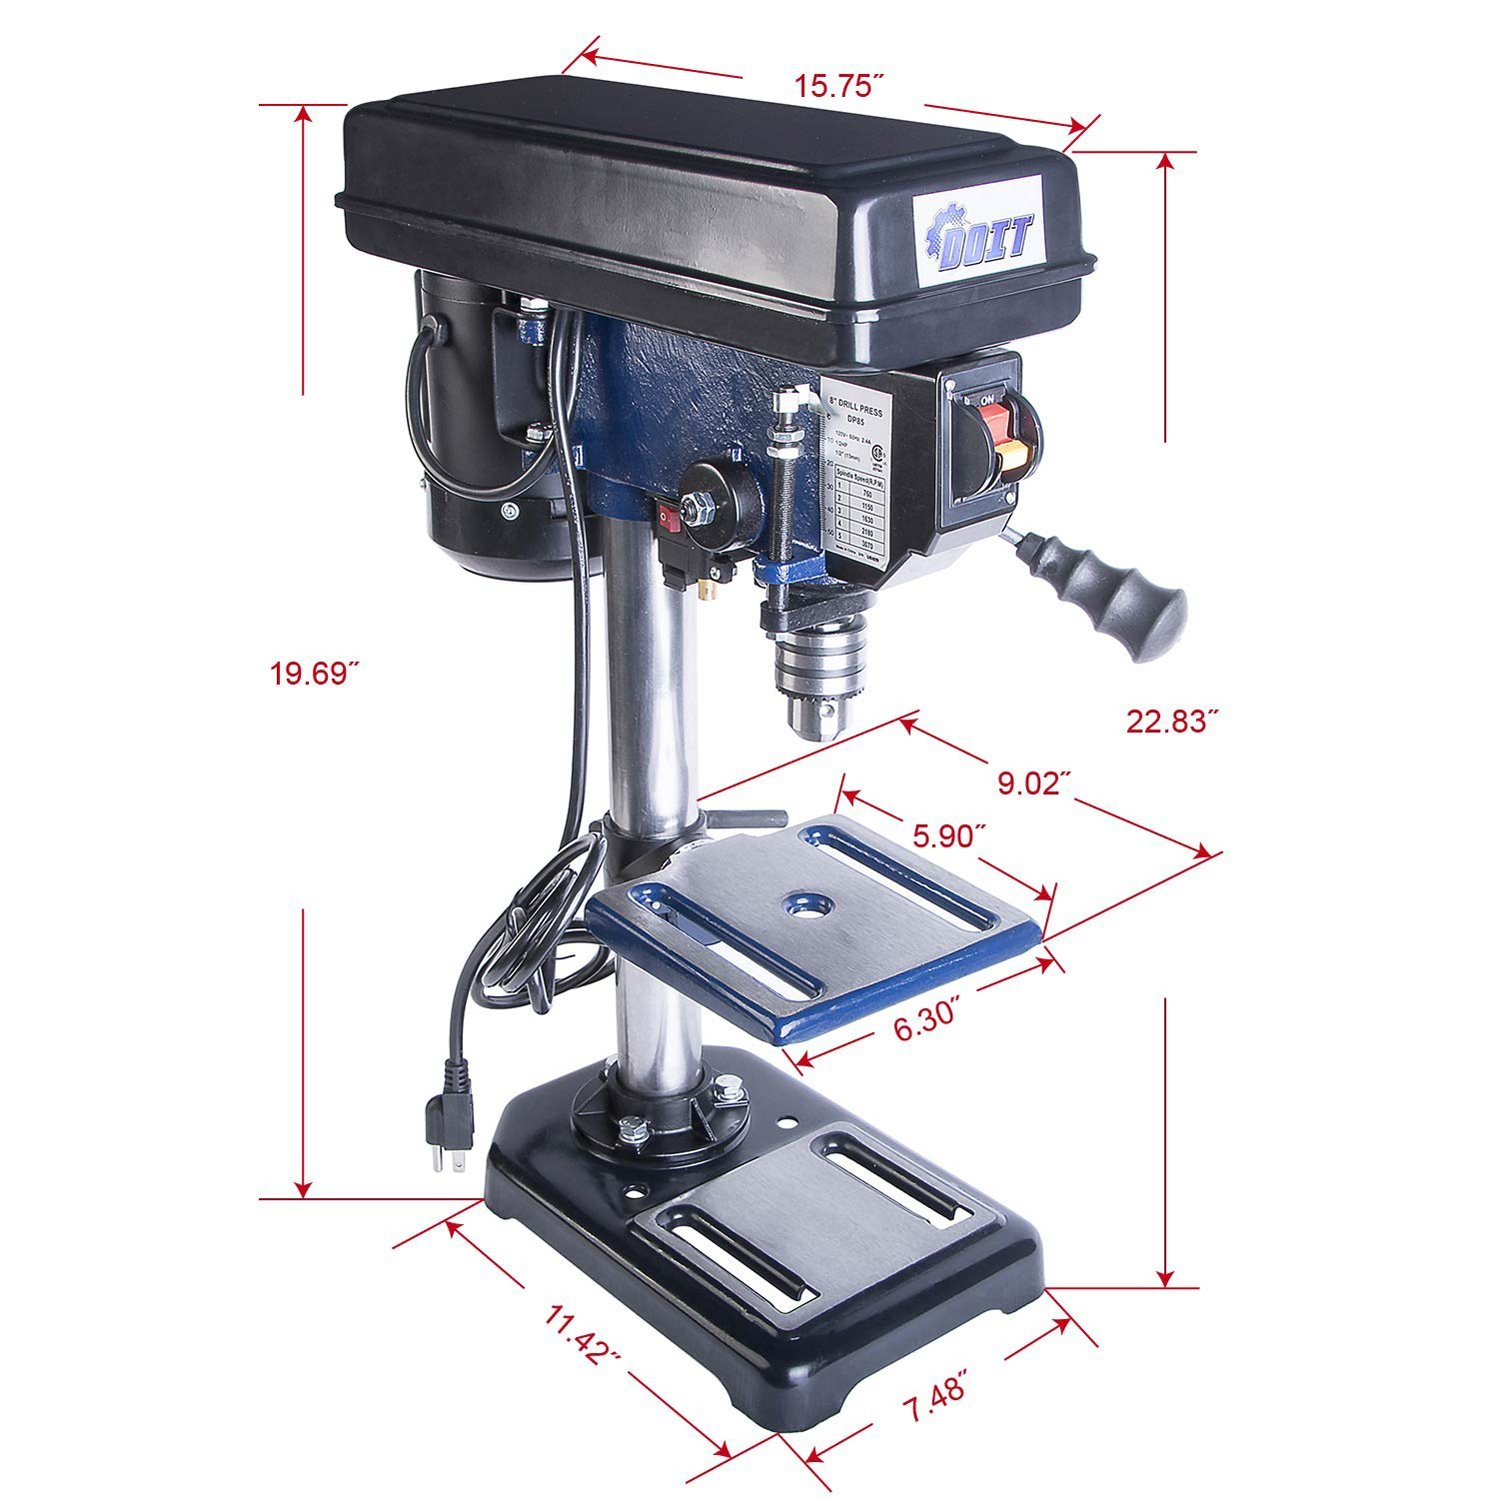 Ainfox 120V drill press